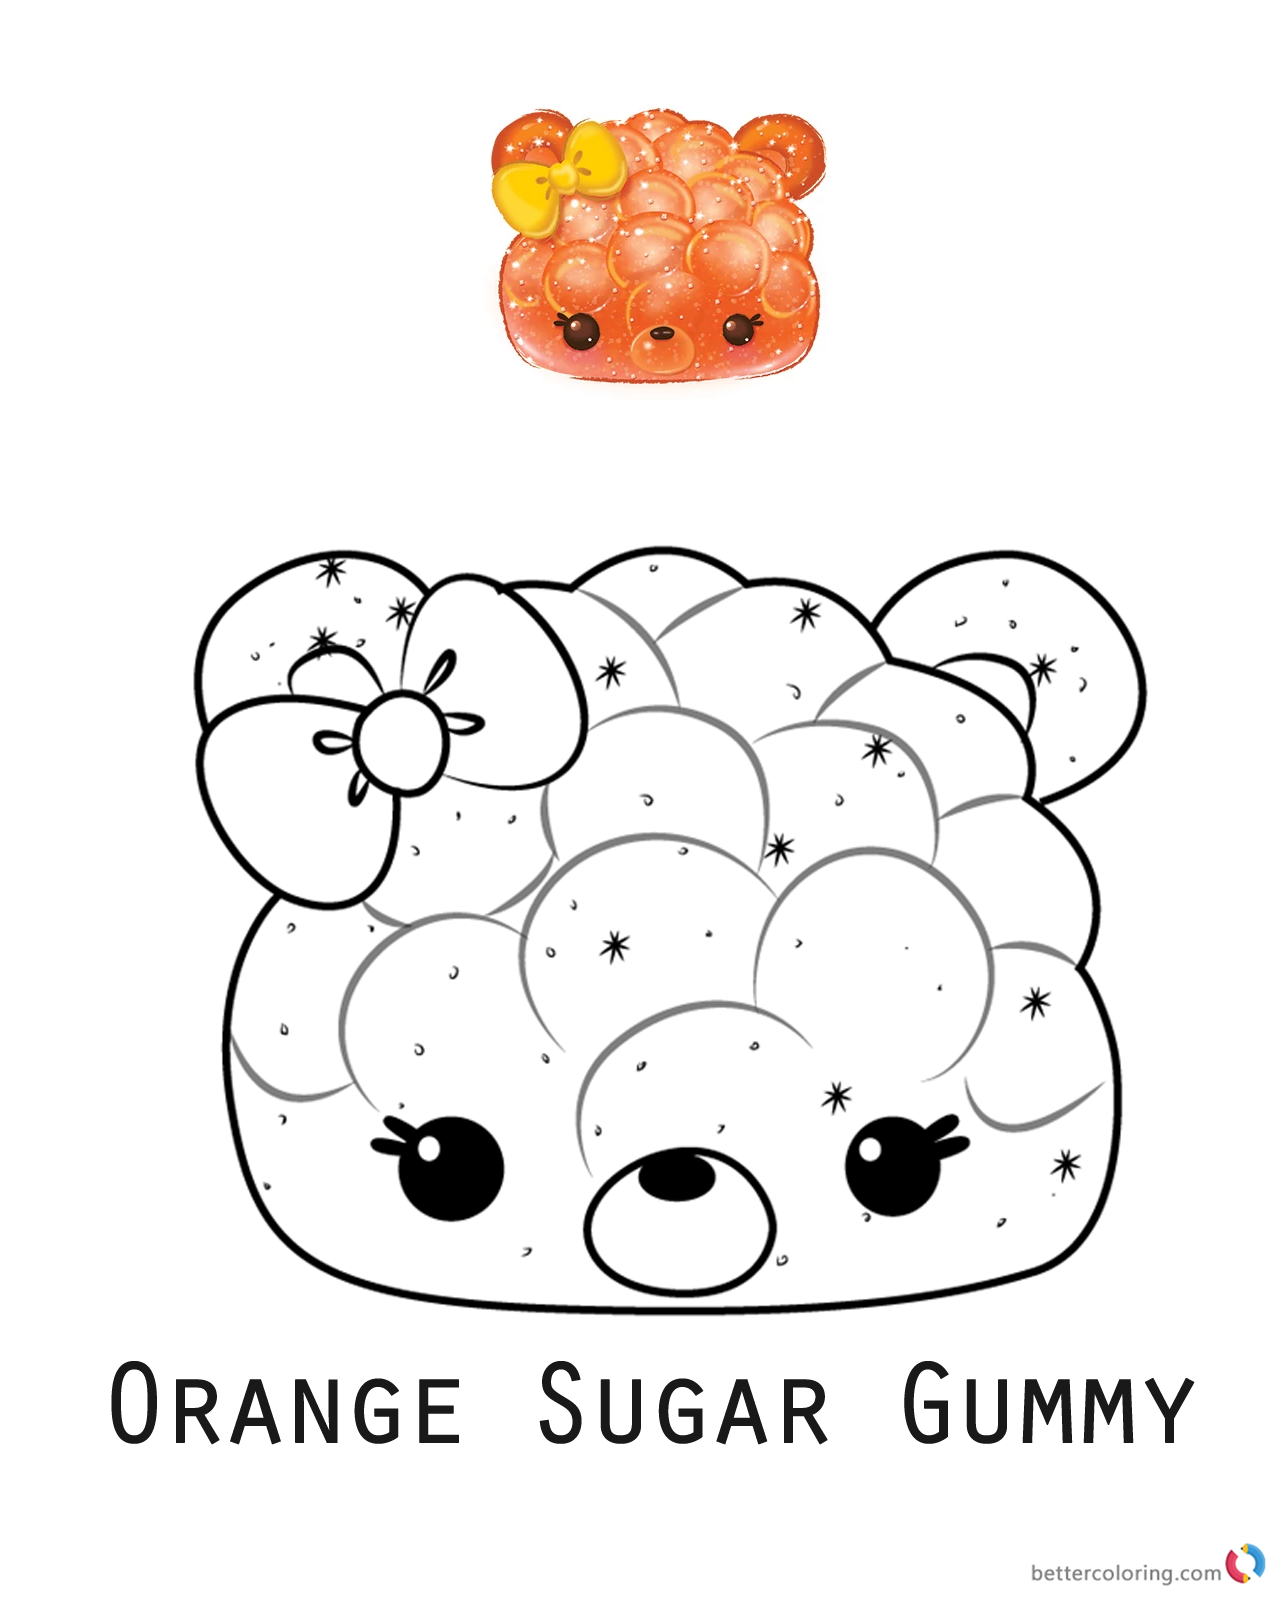 Orange Sugar Gummy from Num Noms coloring pages printable